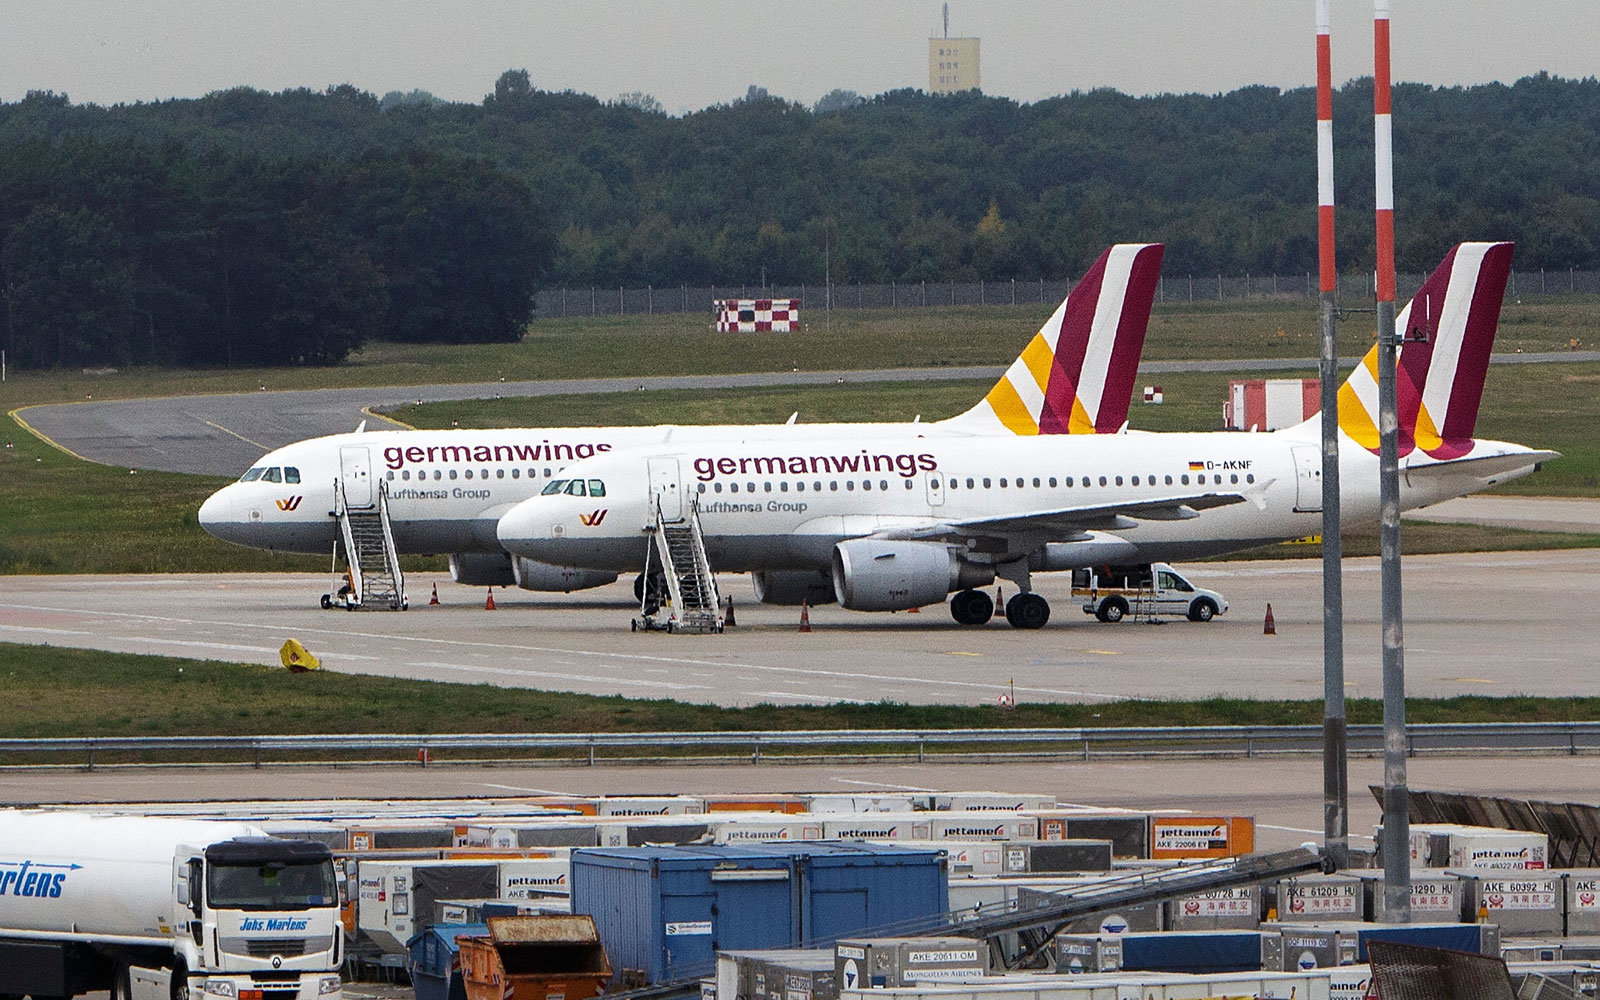 Two Germanwings planes at the airport.